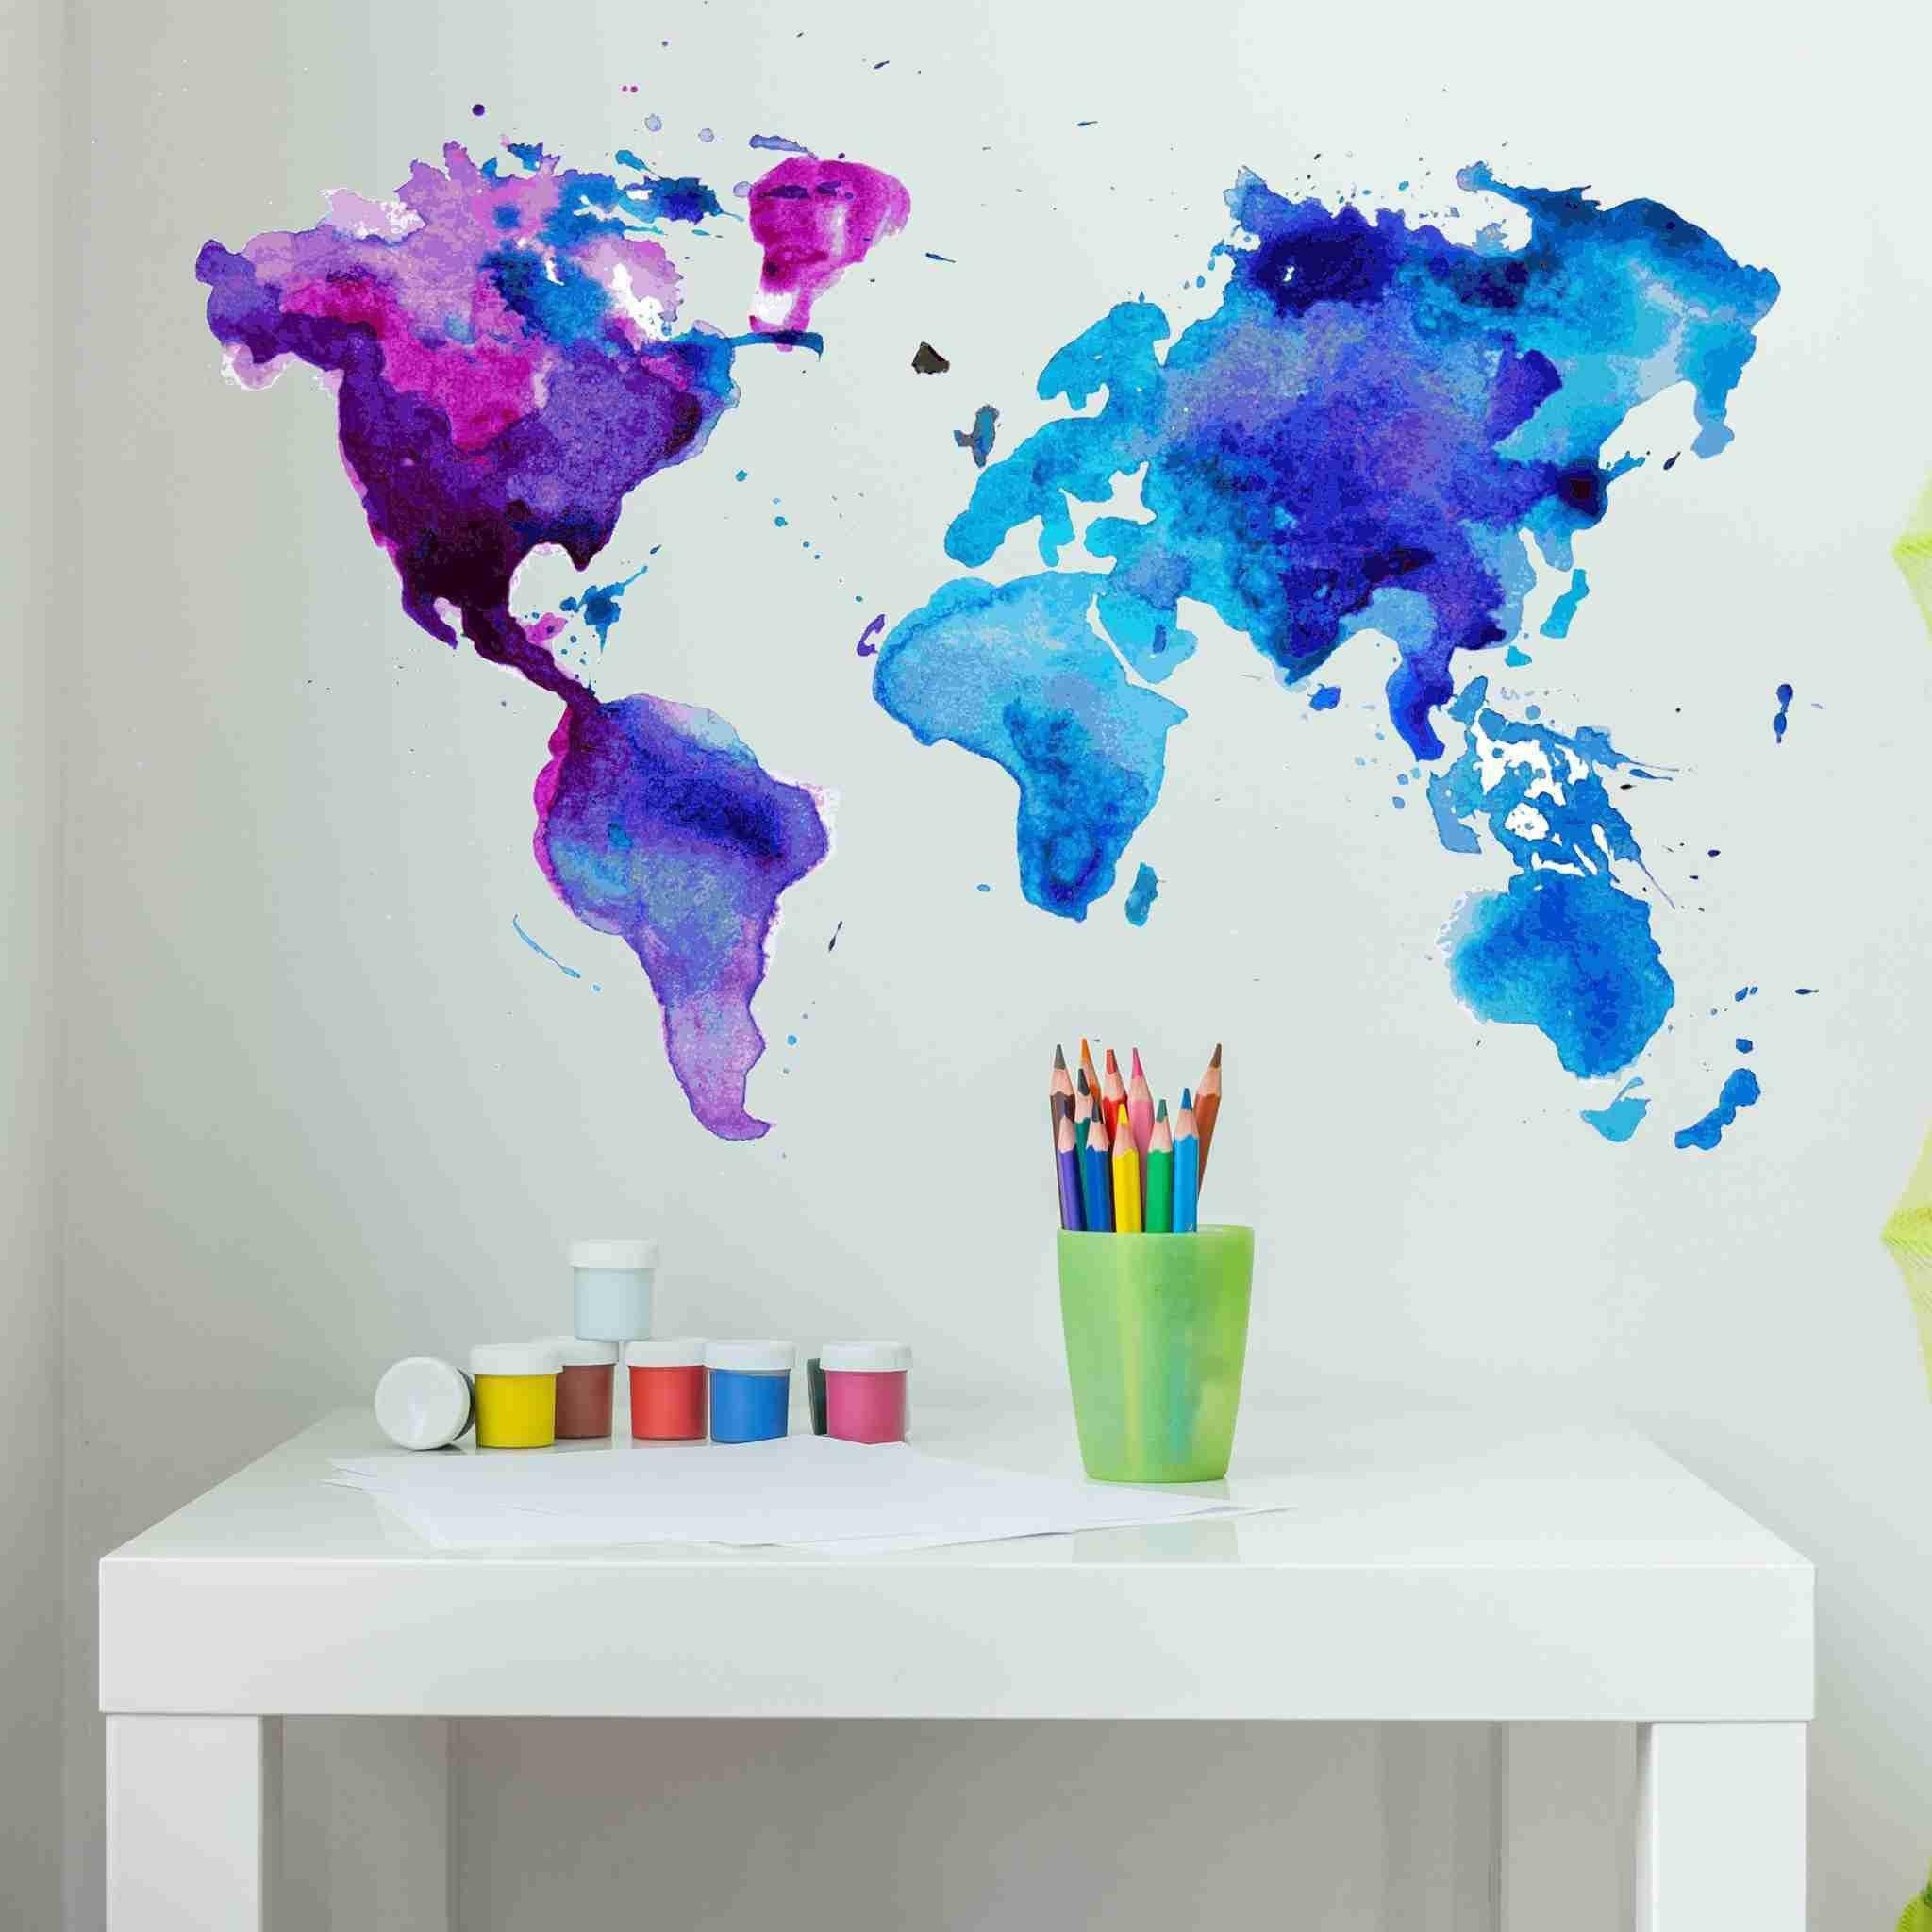 Watercolor World Map Wall Decal  sc 1 st  Style and Apply : map wall decals - www.pureclipart.com